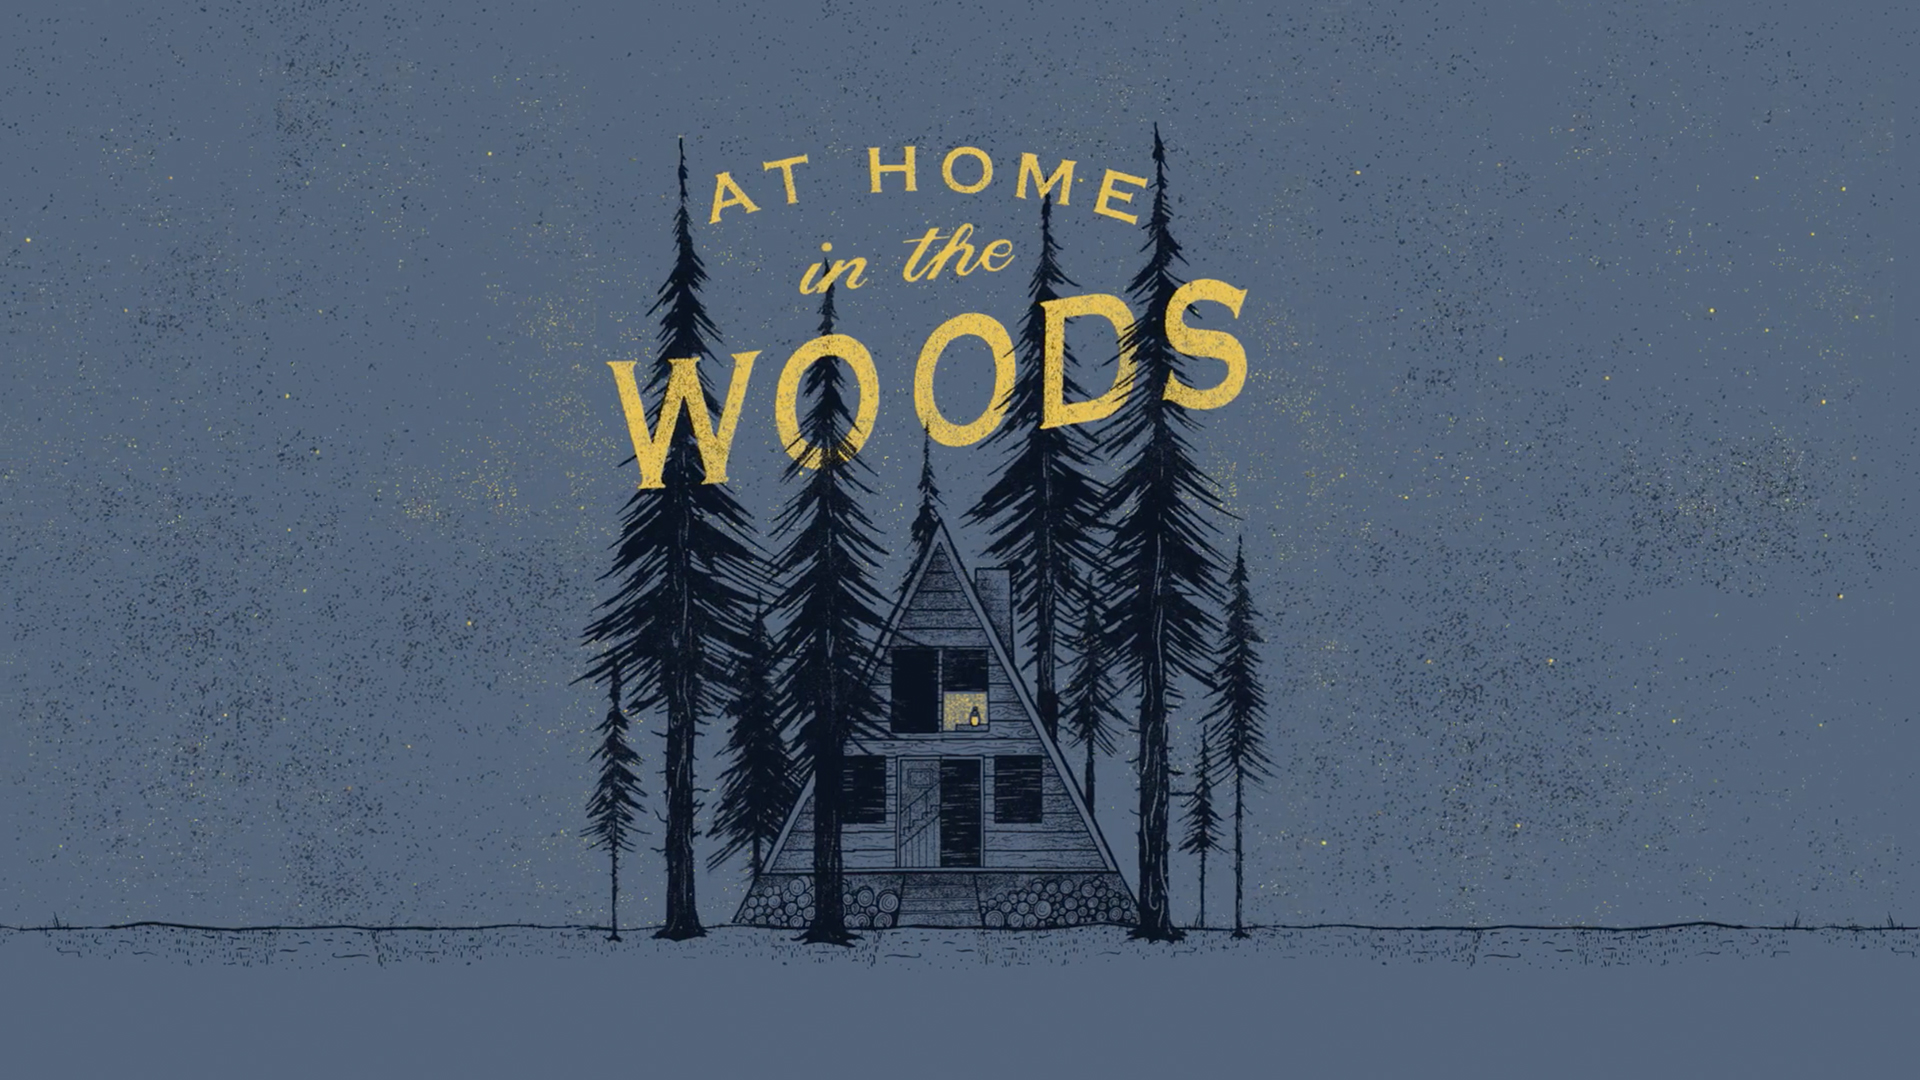 AT HOME IN THE WOODS